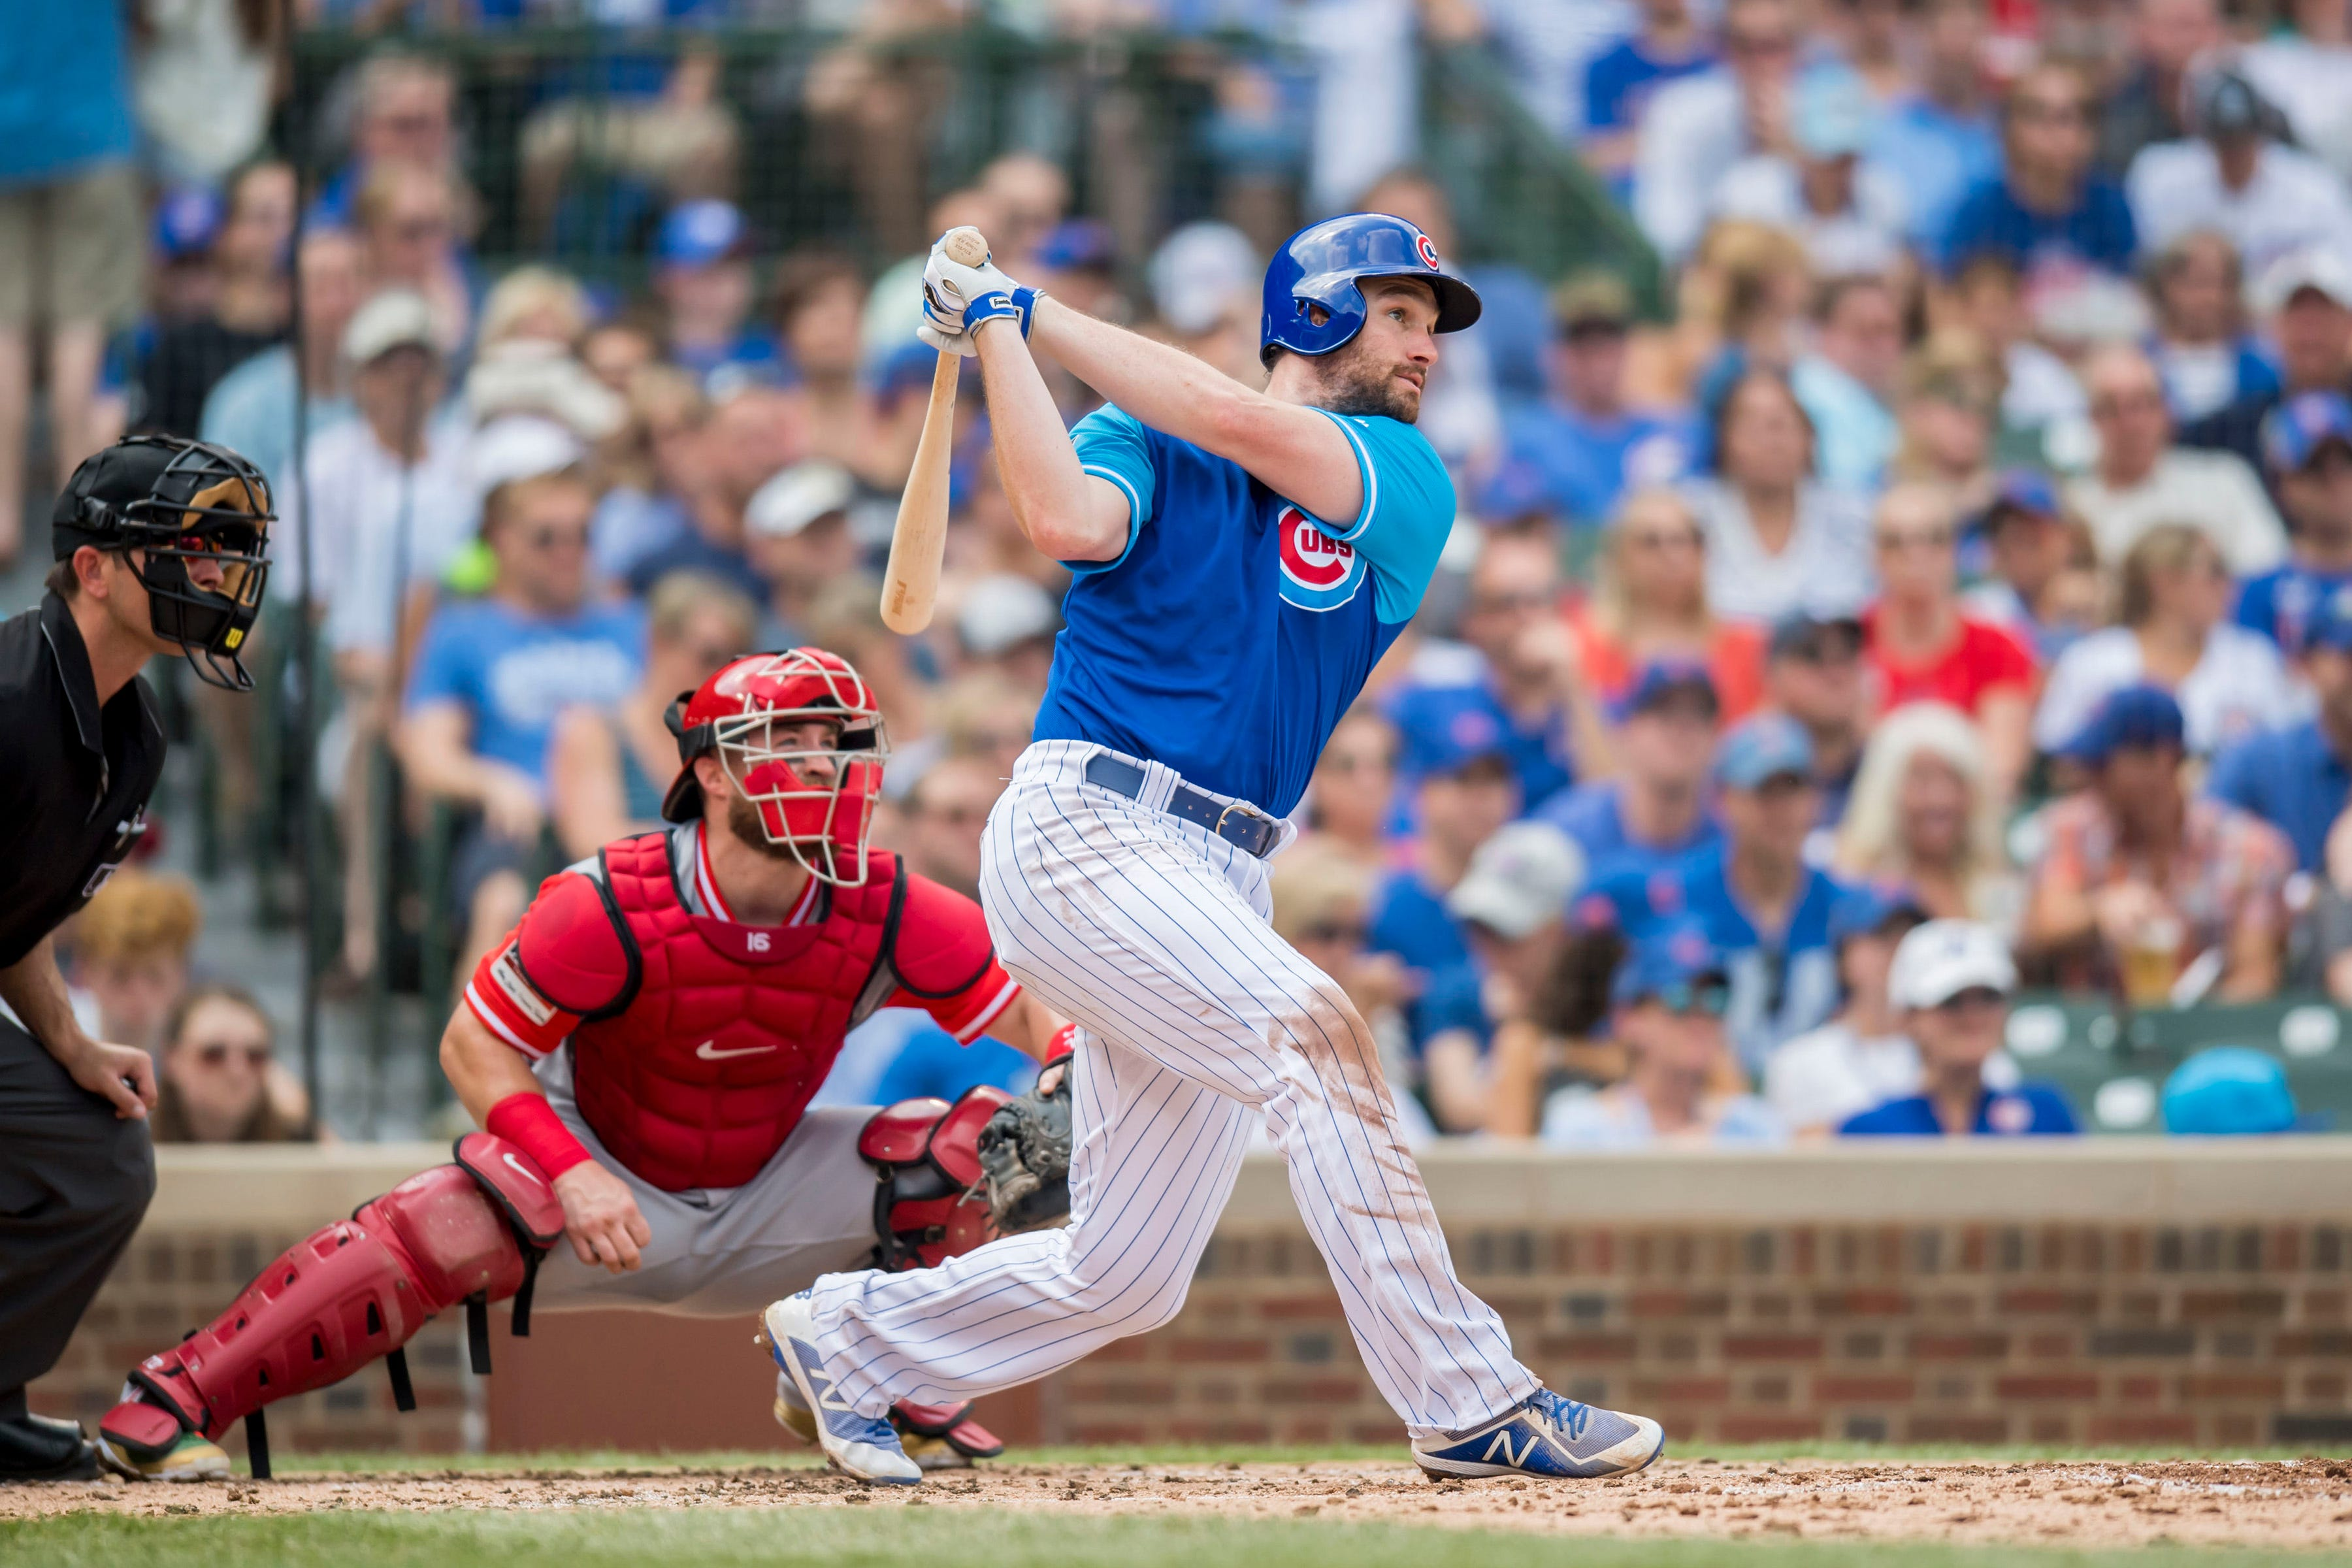 Cubs co-owner: Daniel Murphy's anti-gay comments were considered in trade deliberations